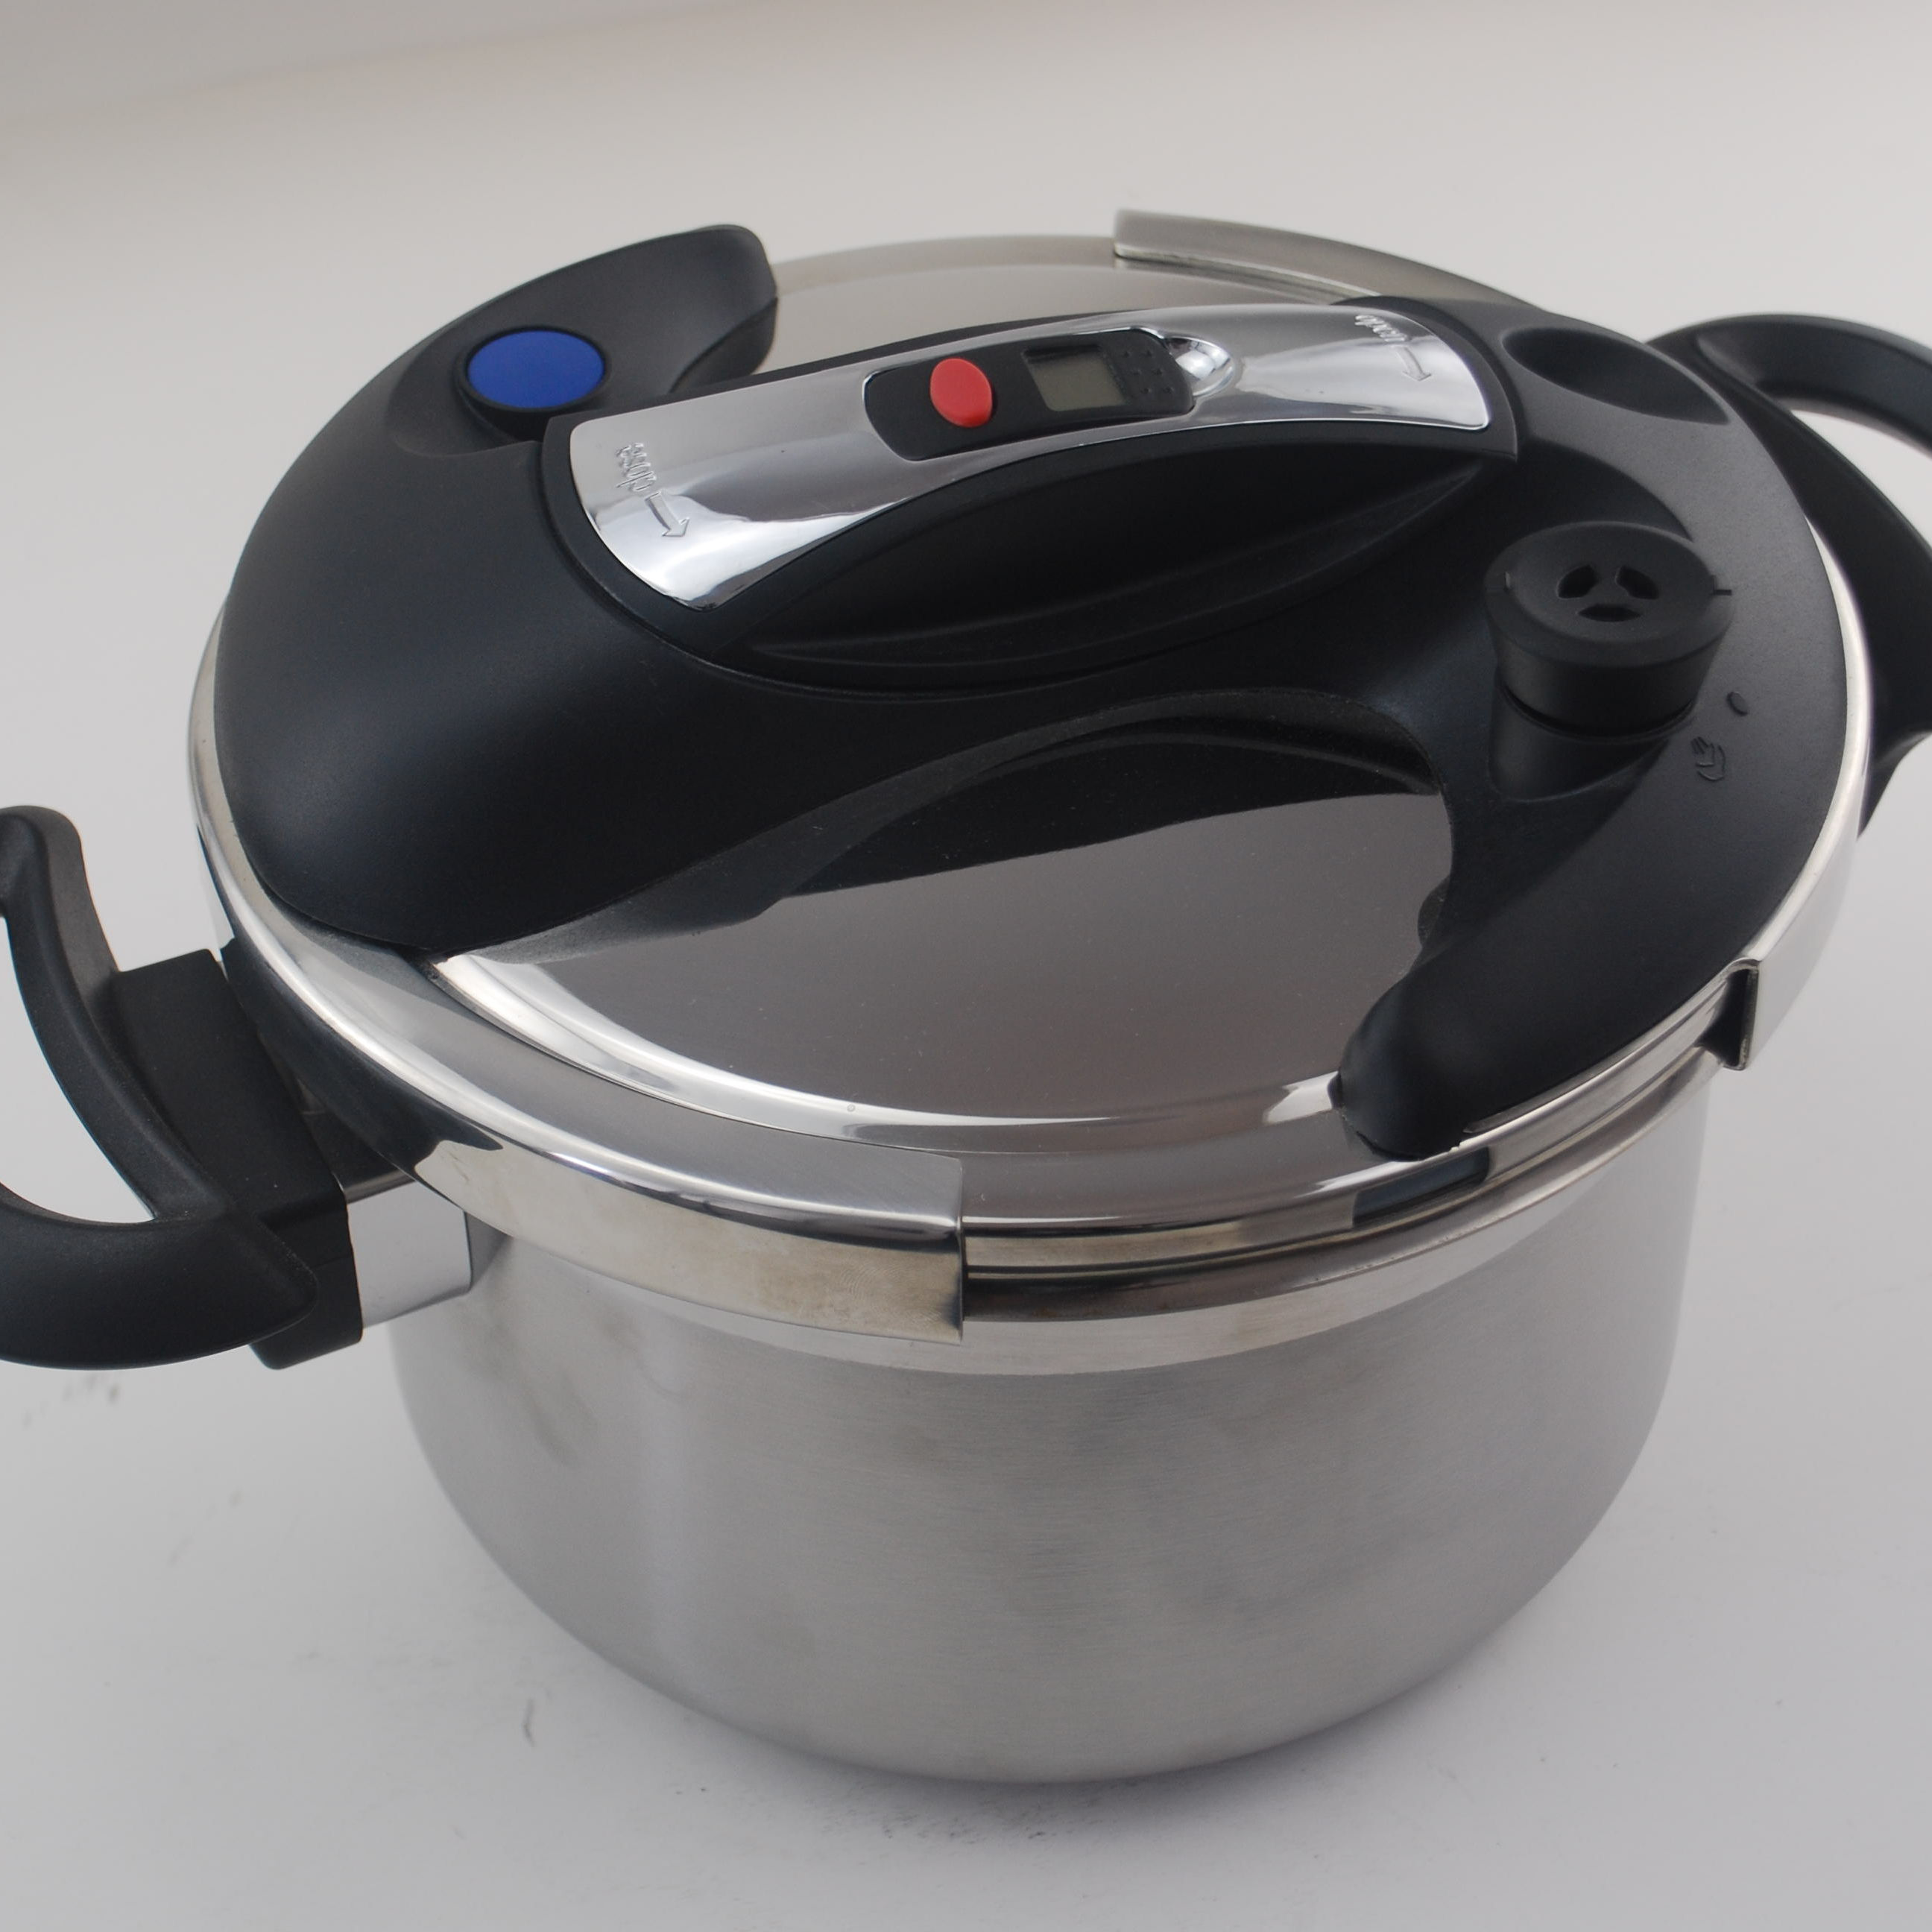 Hot sale high quality clamping pressure cooker multi cooker stainless steel cooker with electronic timer